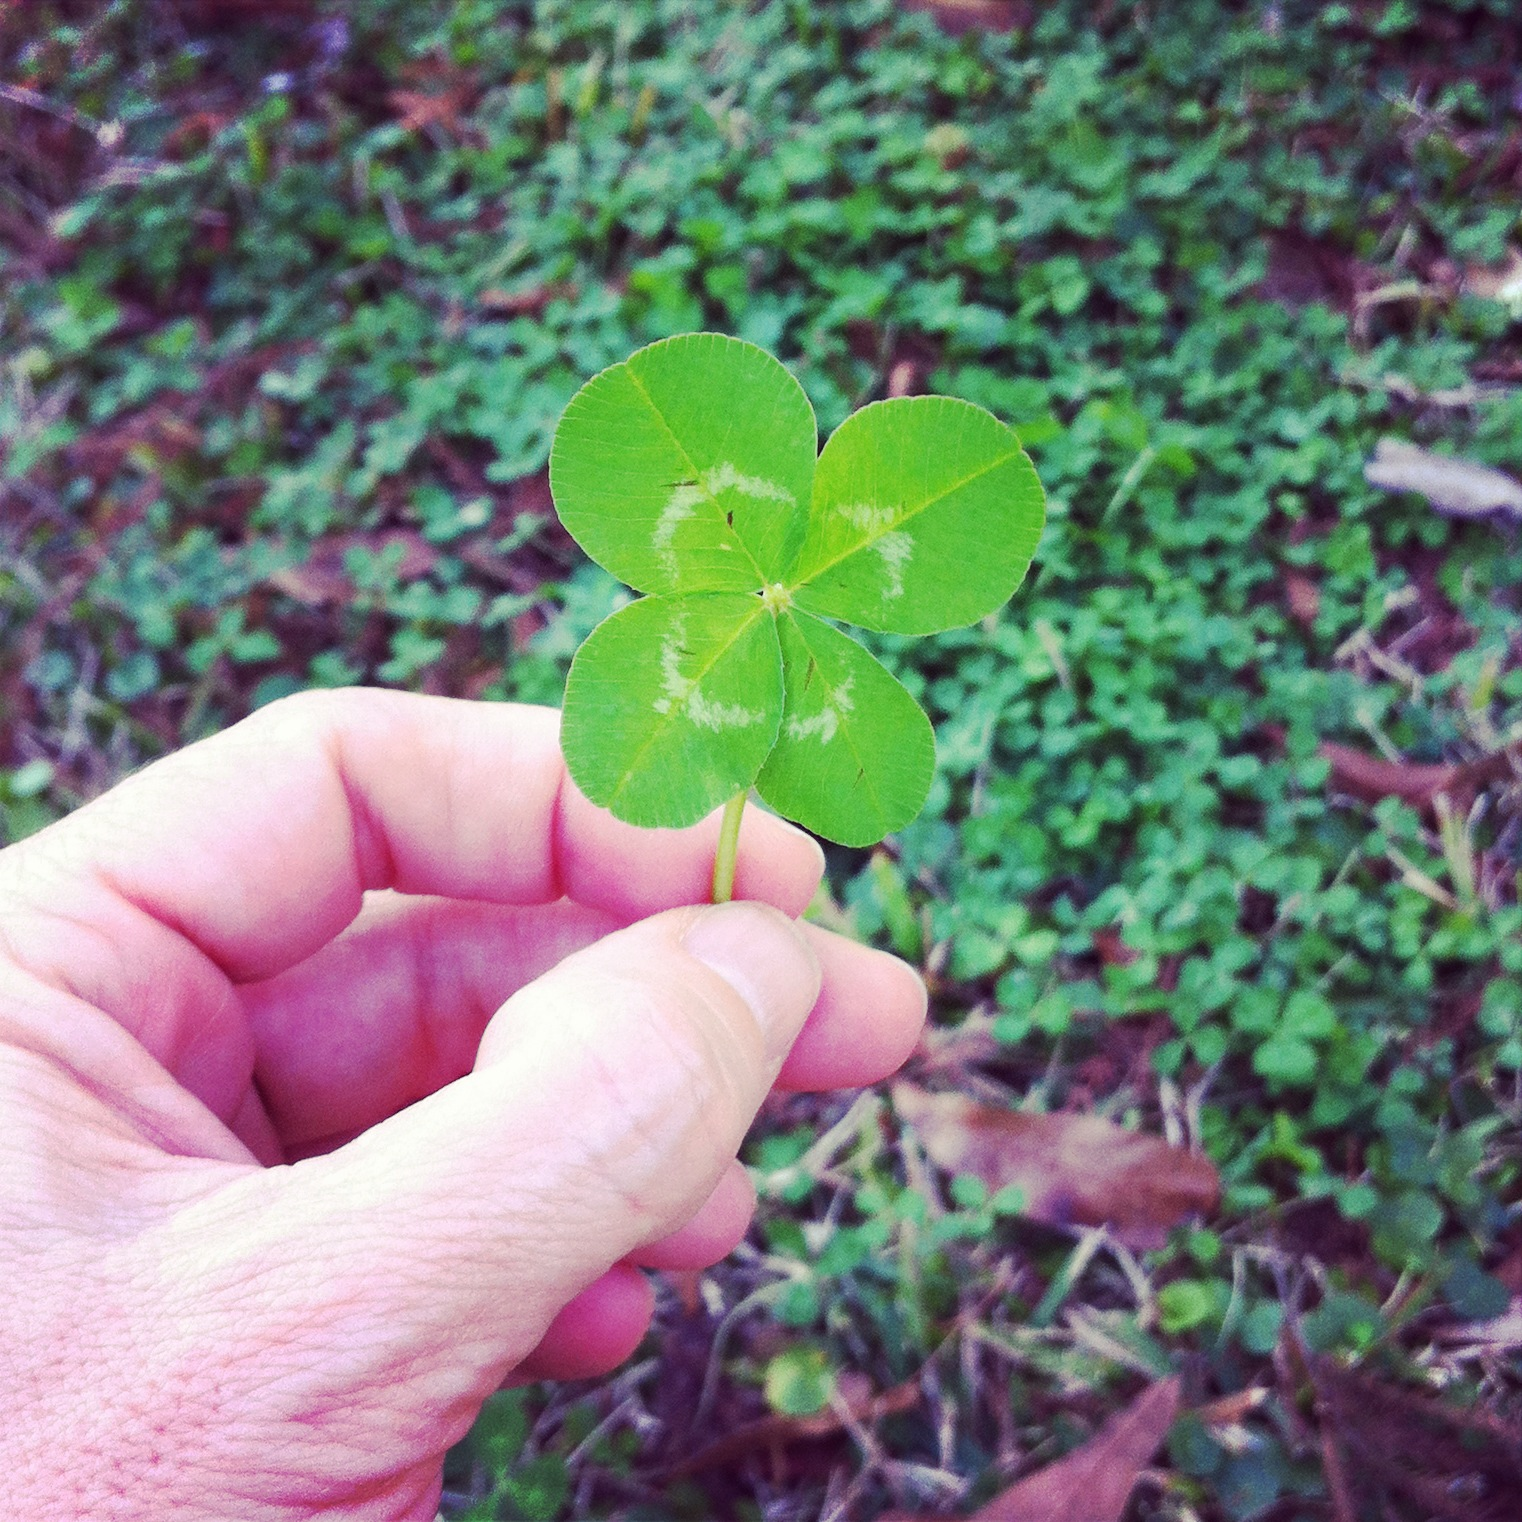 That extra leaf is filled with the luck!